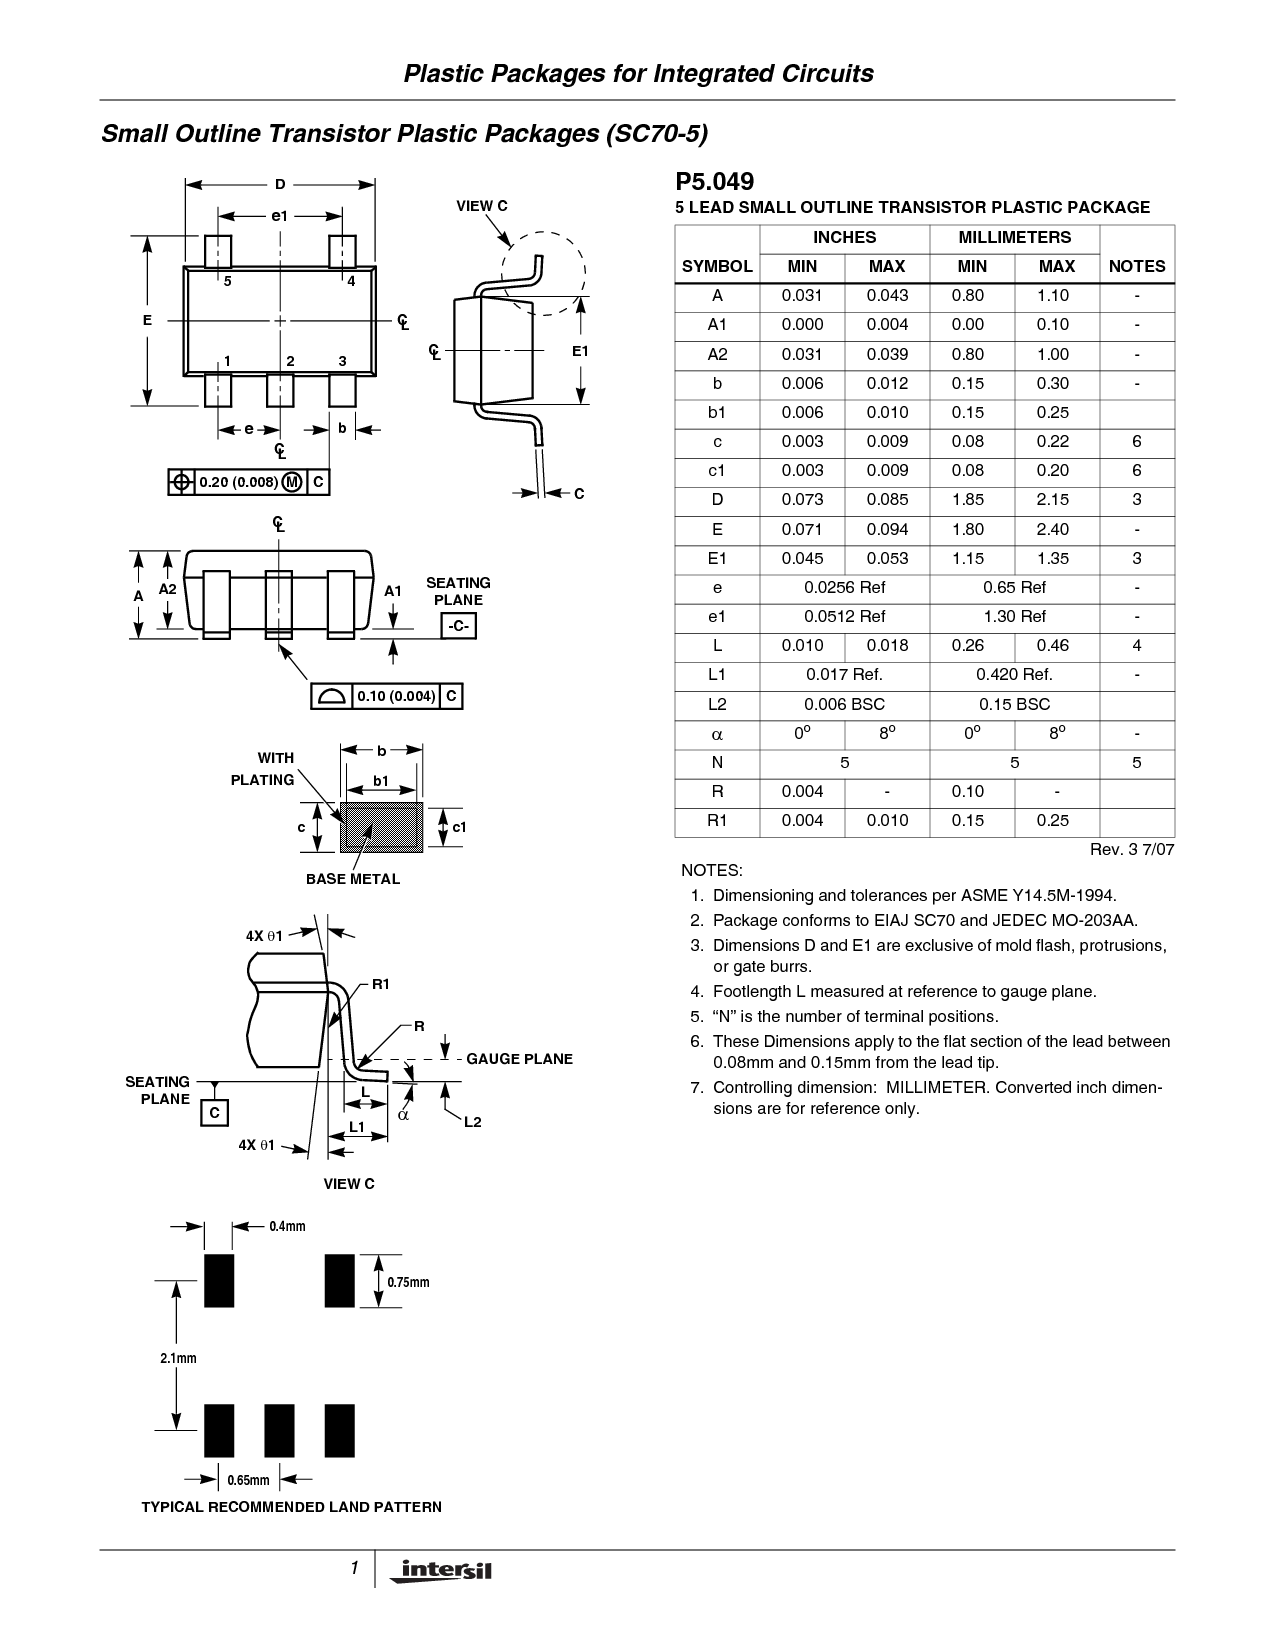 Dimensions and recommended land pattern for the SOT-323-5 (SC-70-5) component package.